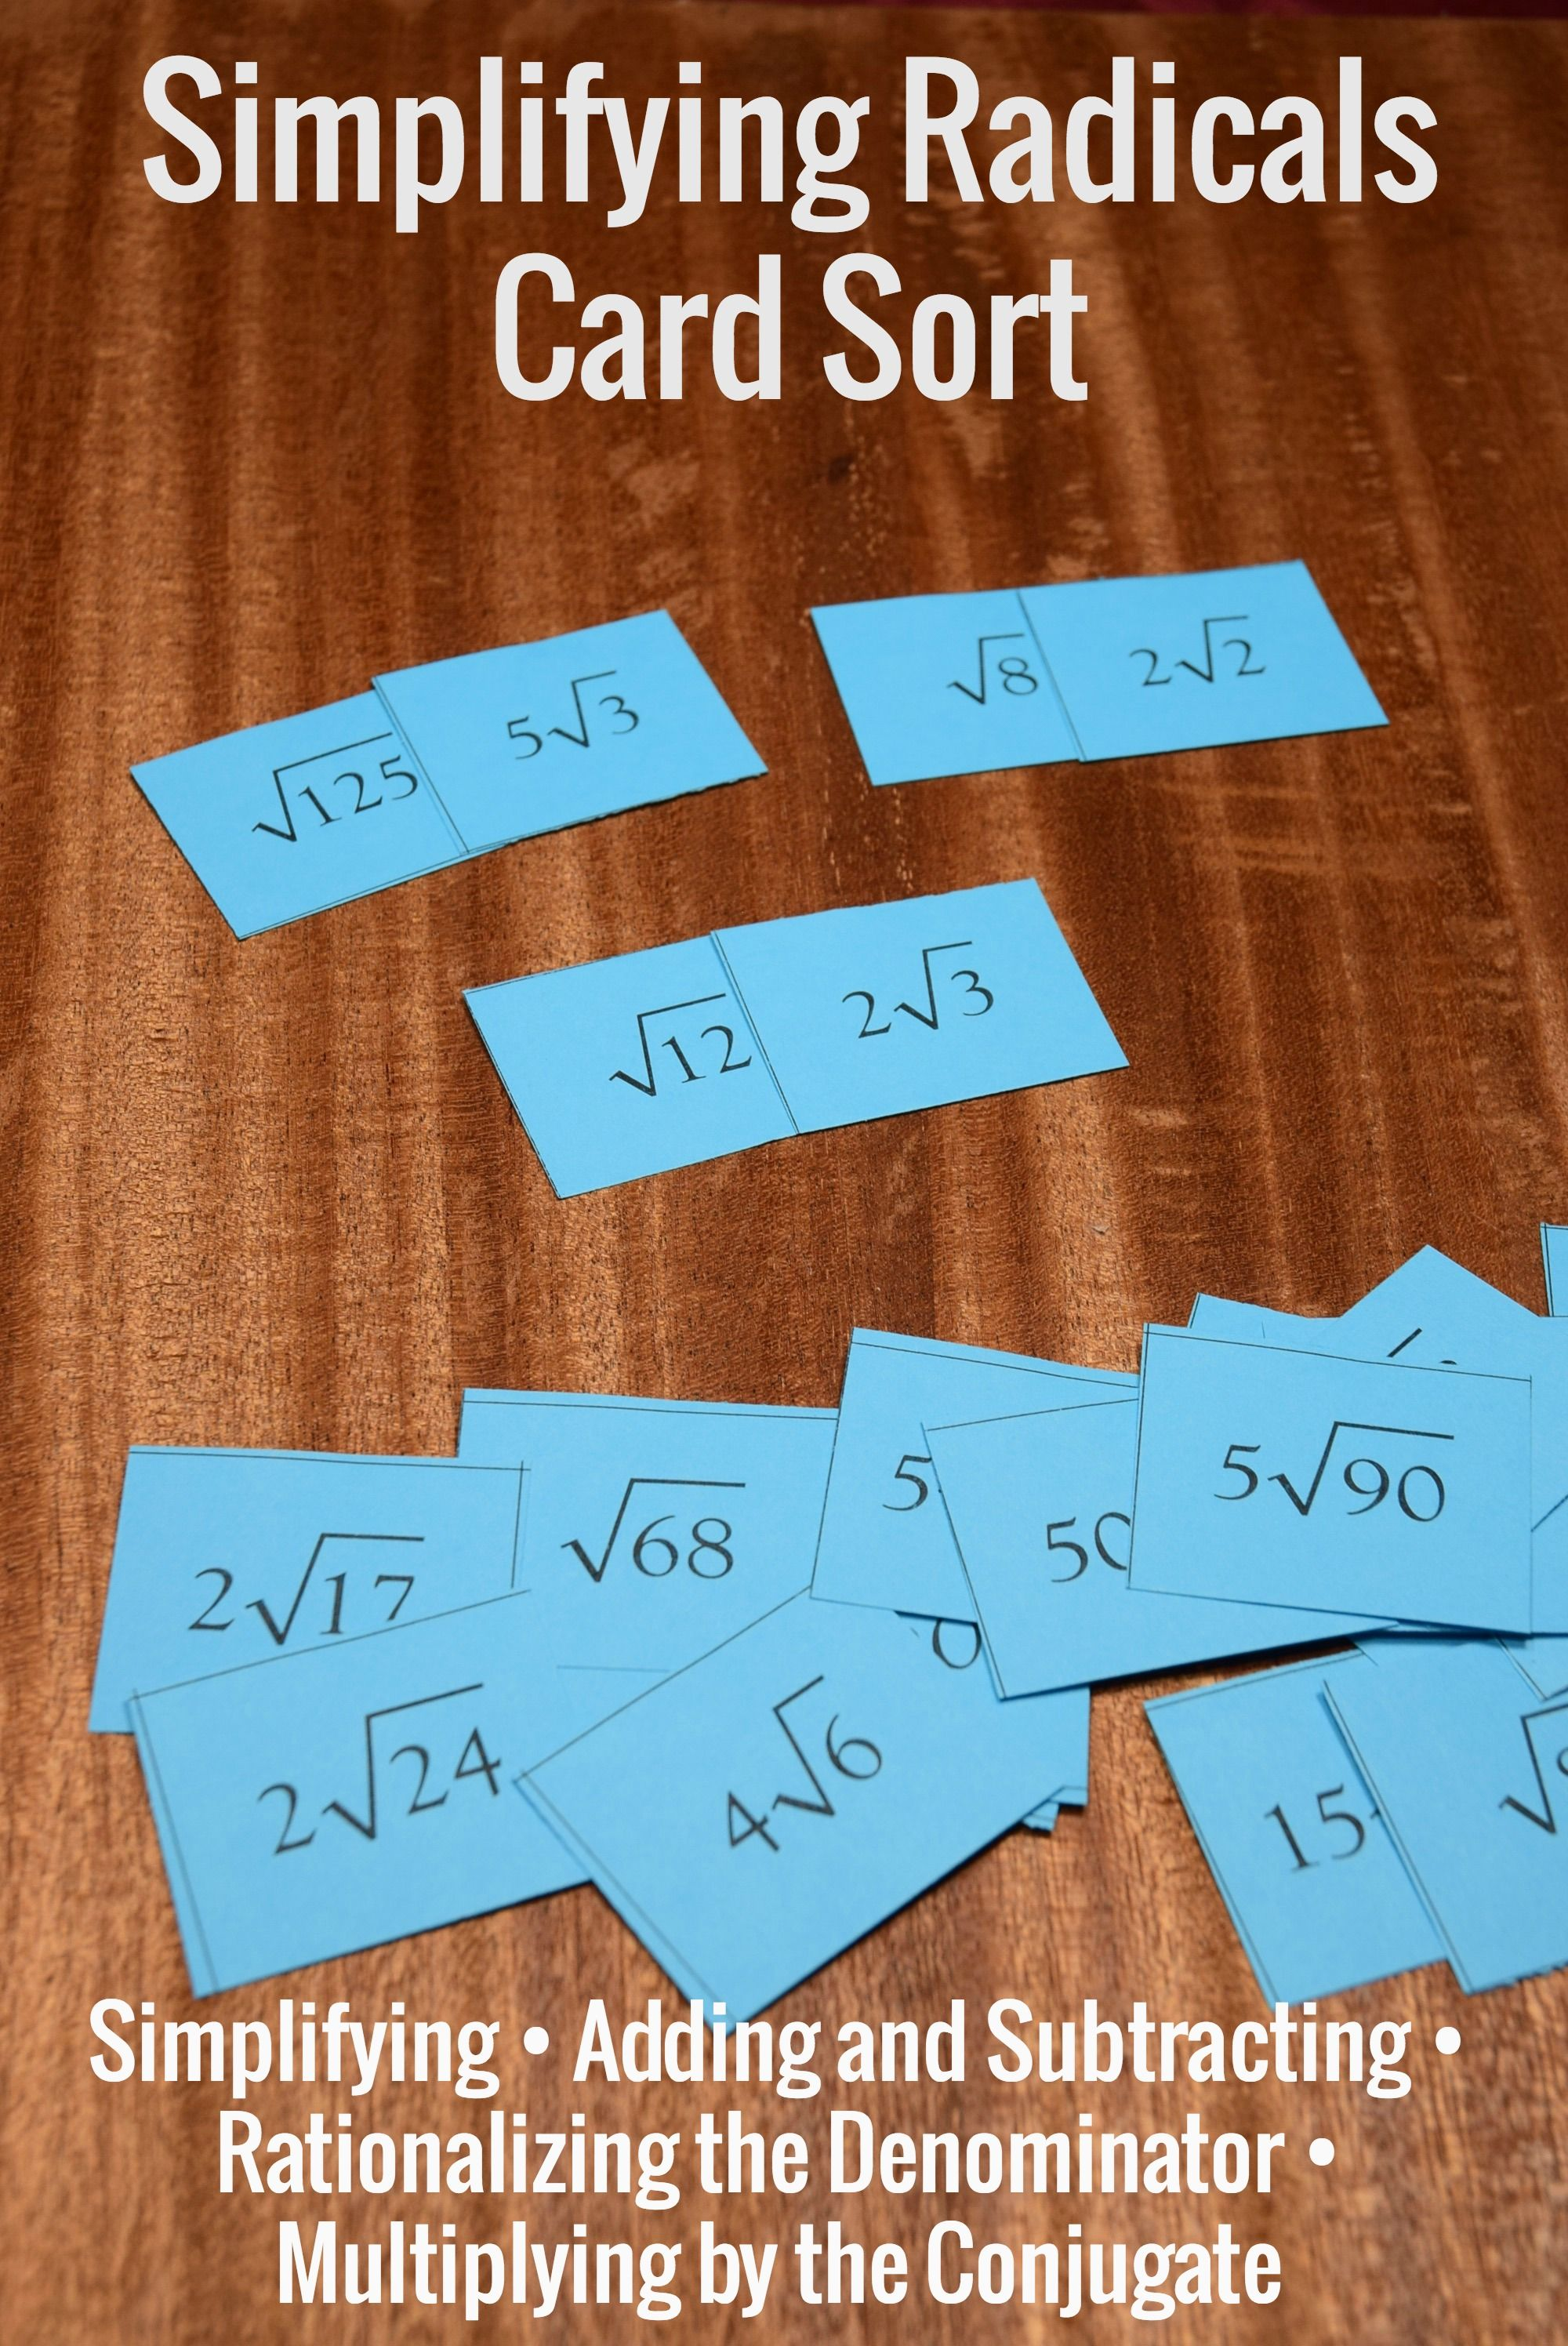 Radicals Card Sort Rationalizing And Conjugates Included Sorting Cards Simplifying Radicals Math Crafts Simplifying radical expressions adding